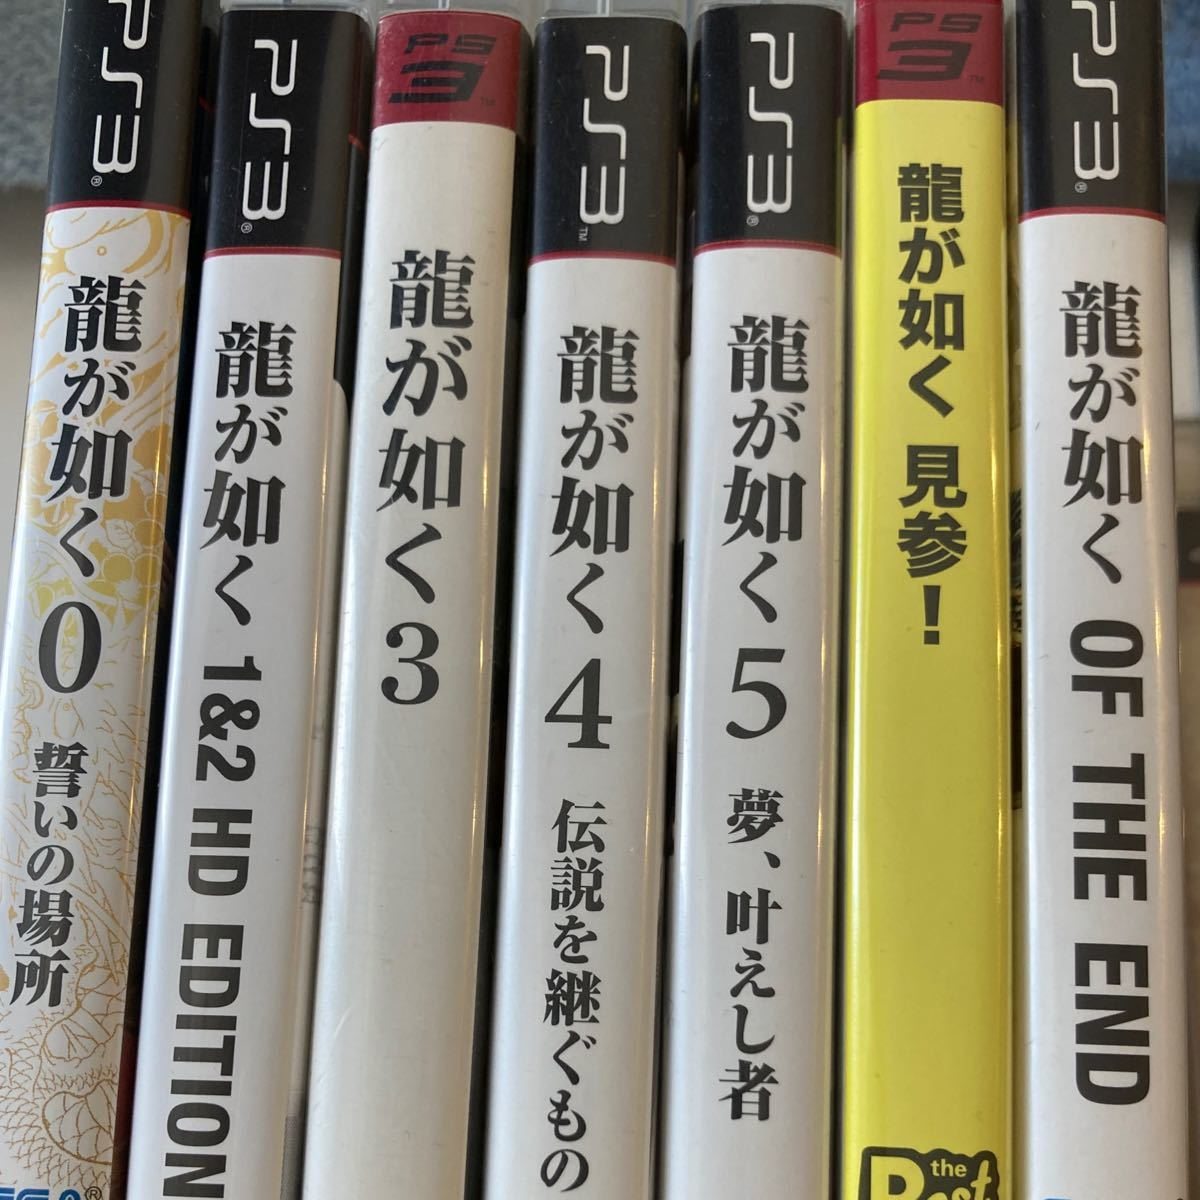 PS3 龍が如く 7本セット